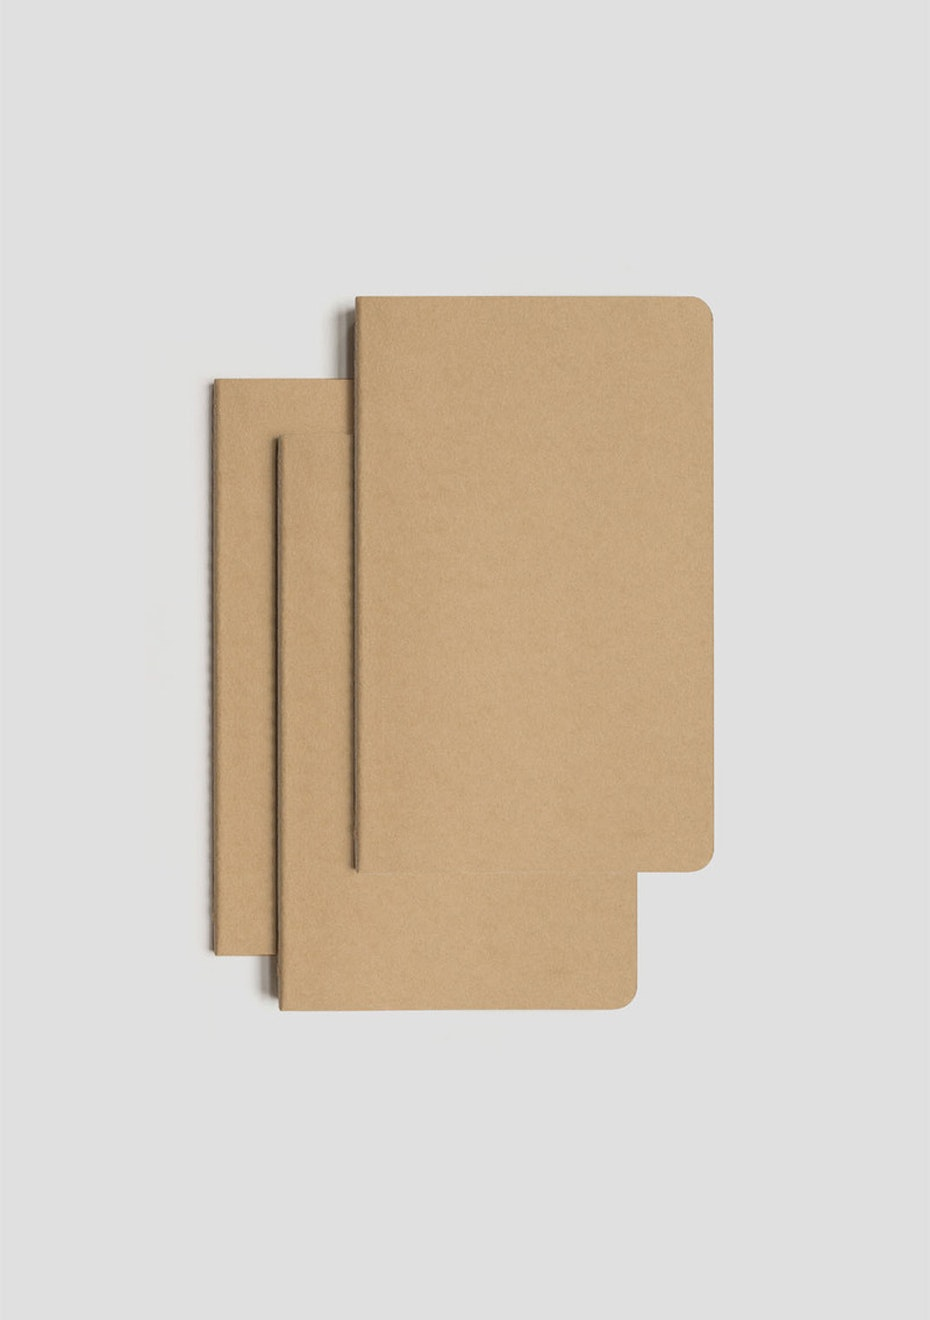 Cahier Notebook - Set of 3 - Ruled